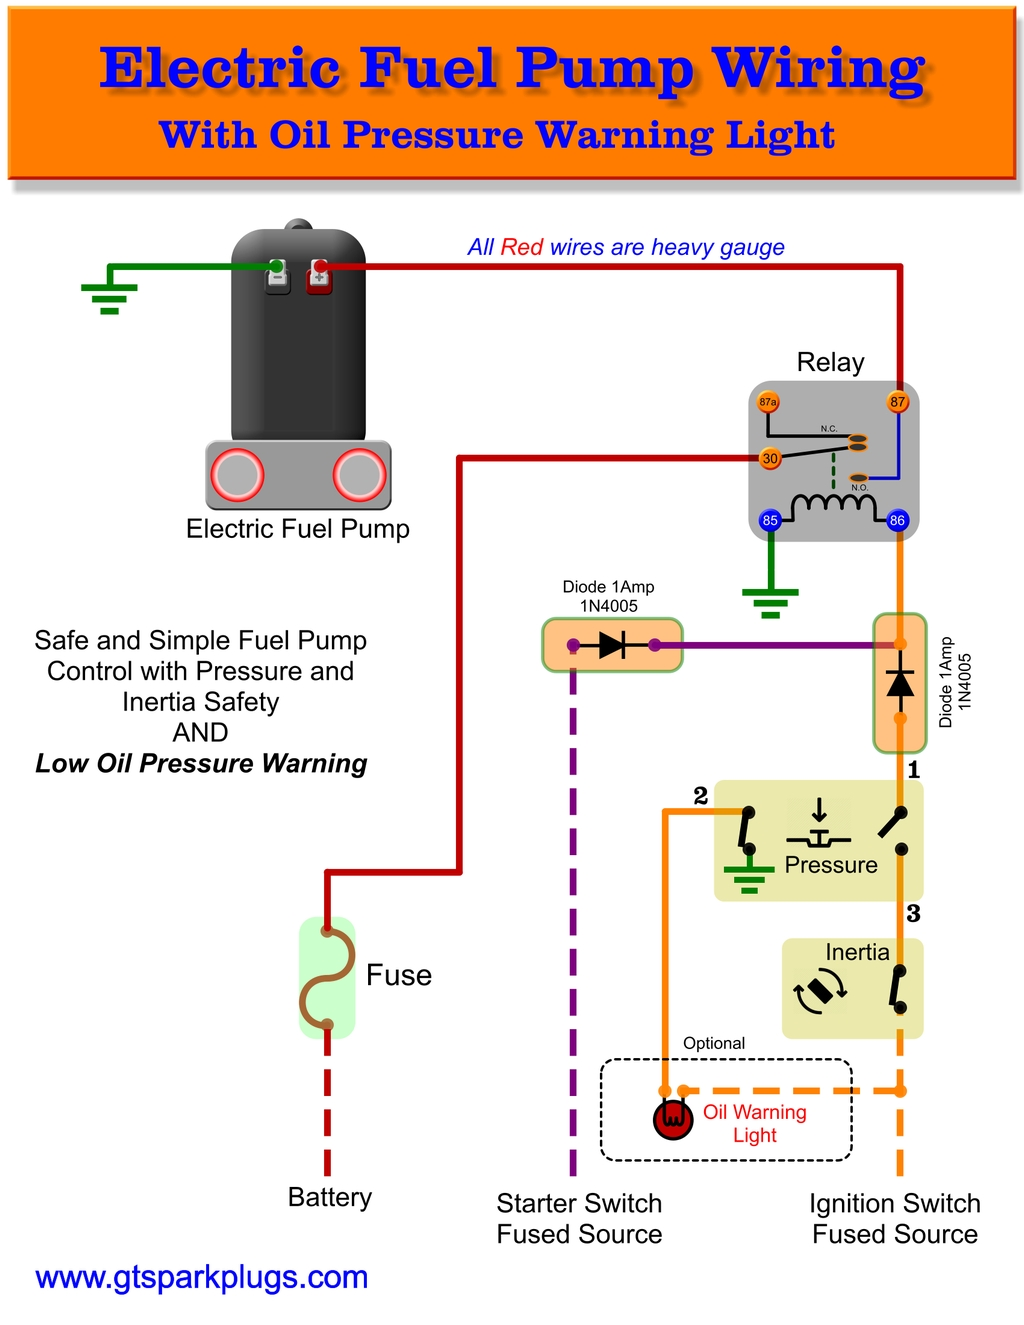 Wiring Diagram For Electric Fuel Pump | Wiring Diagram on